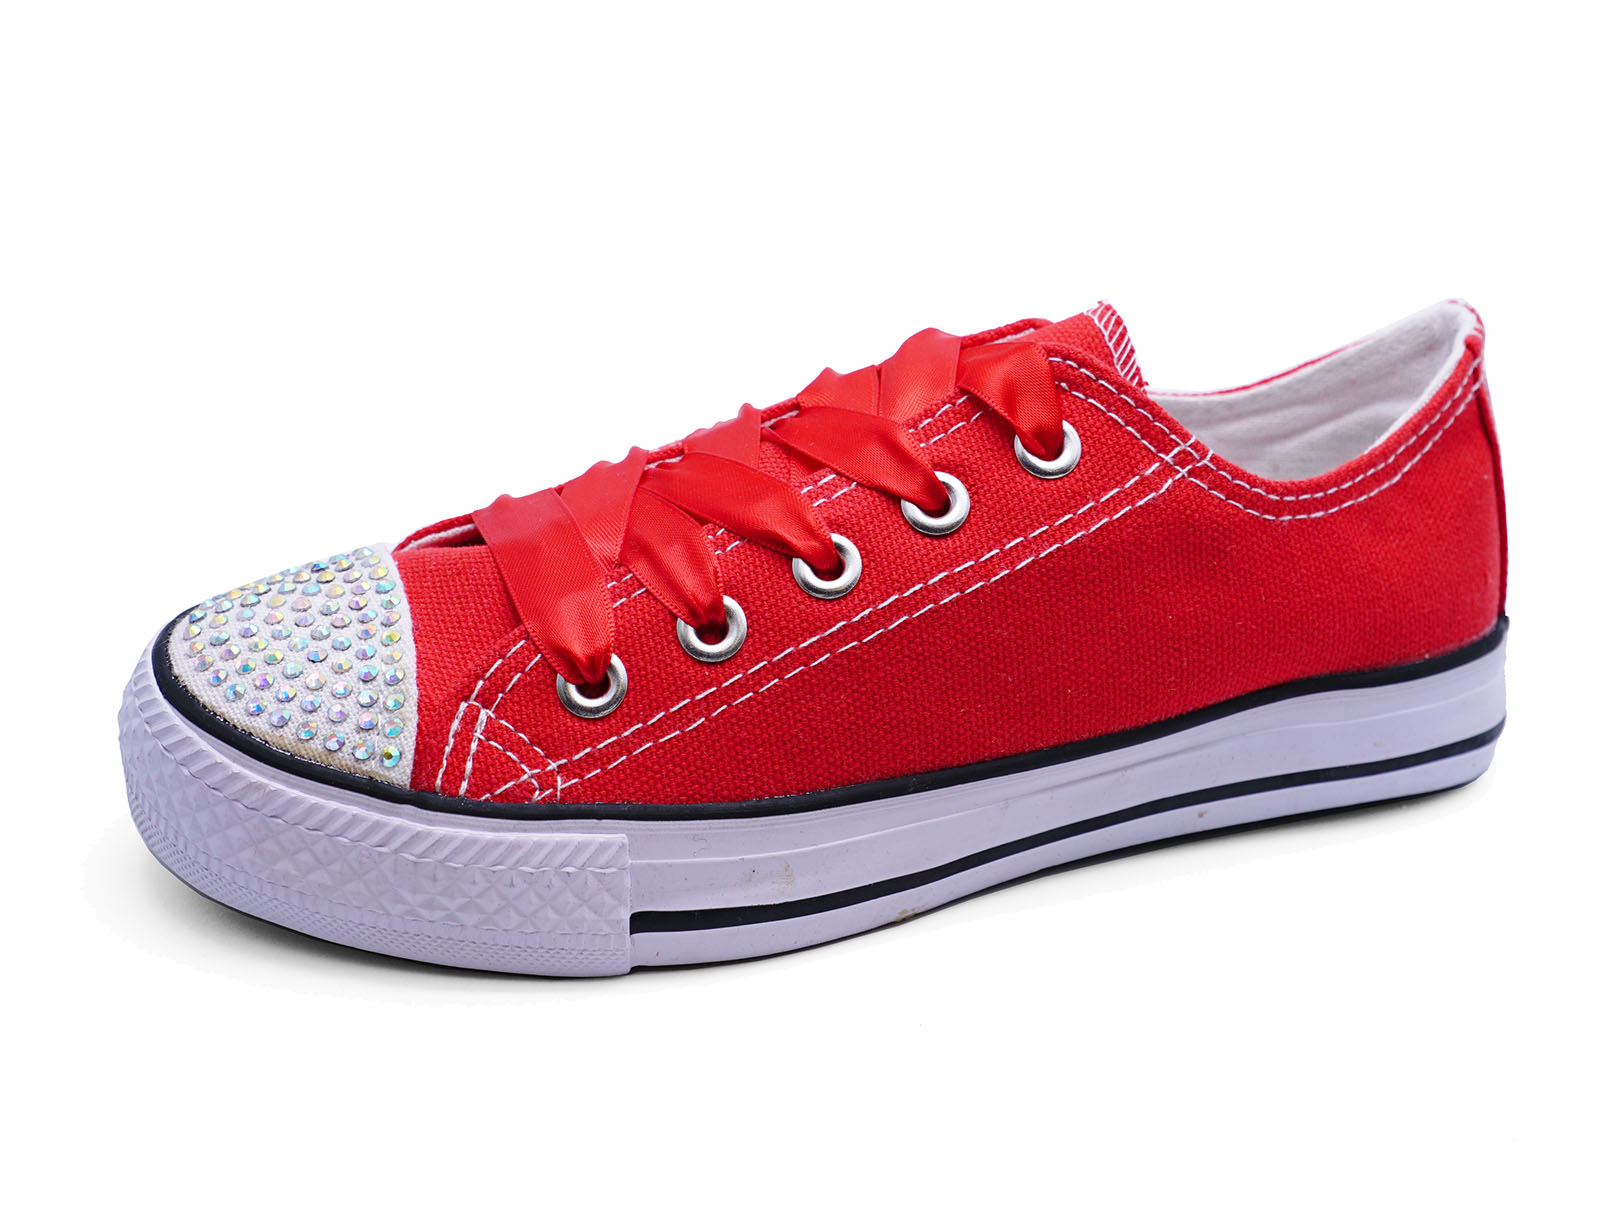 af4bb13962cf GIRLS KIDS CHILDRENS RED CANVAS DIAMANTE LACE-UP PLIMSOLL PUMPS ...